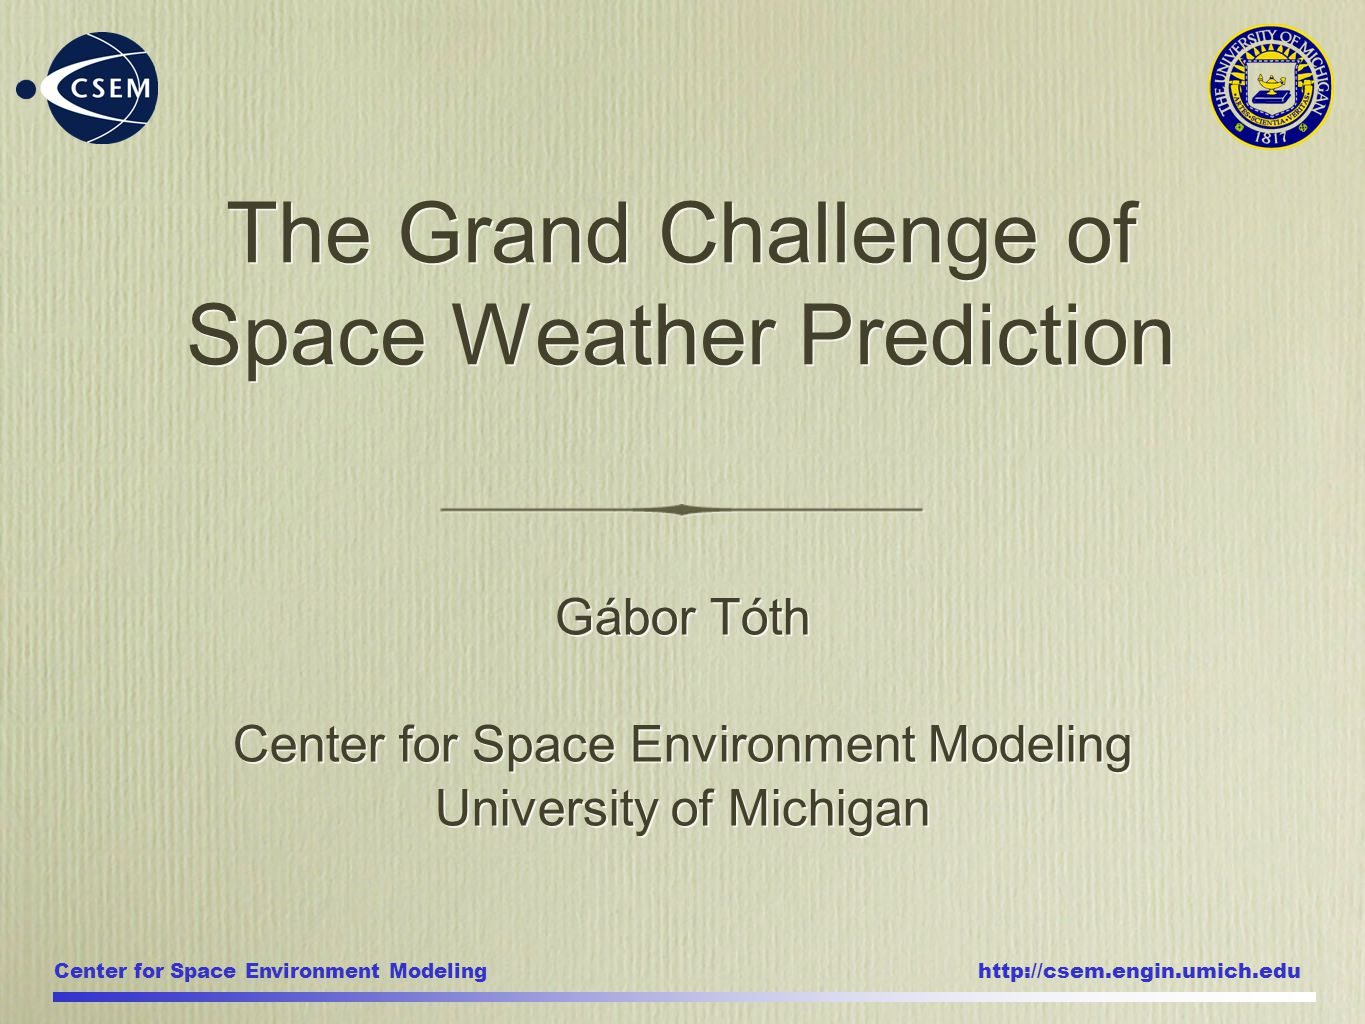 Center for Space Environment Modeling http://csem.engin.umich.edu Gábor Tóth Center for Space Environment Modeling University of Michigan Gábor Tóth Center for Space Environment Modeling University of Michigan The Grand Challenge of Space Weather Prediction